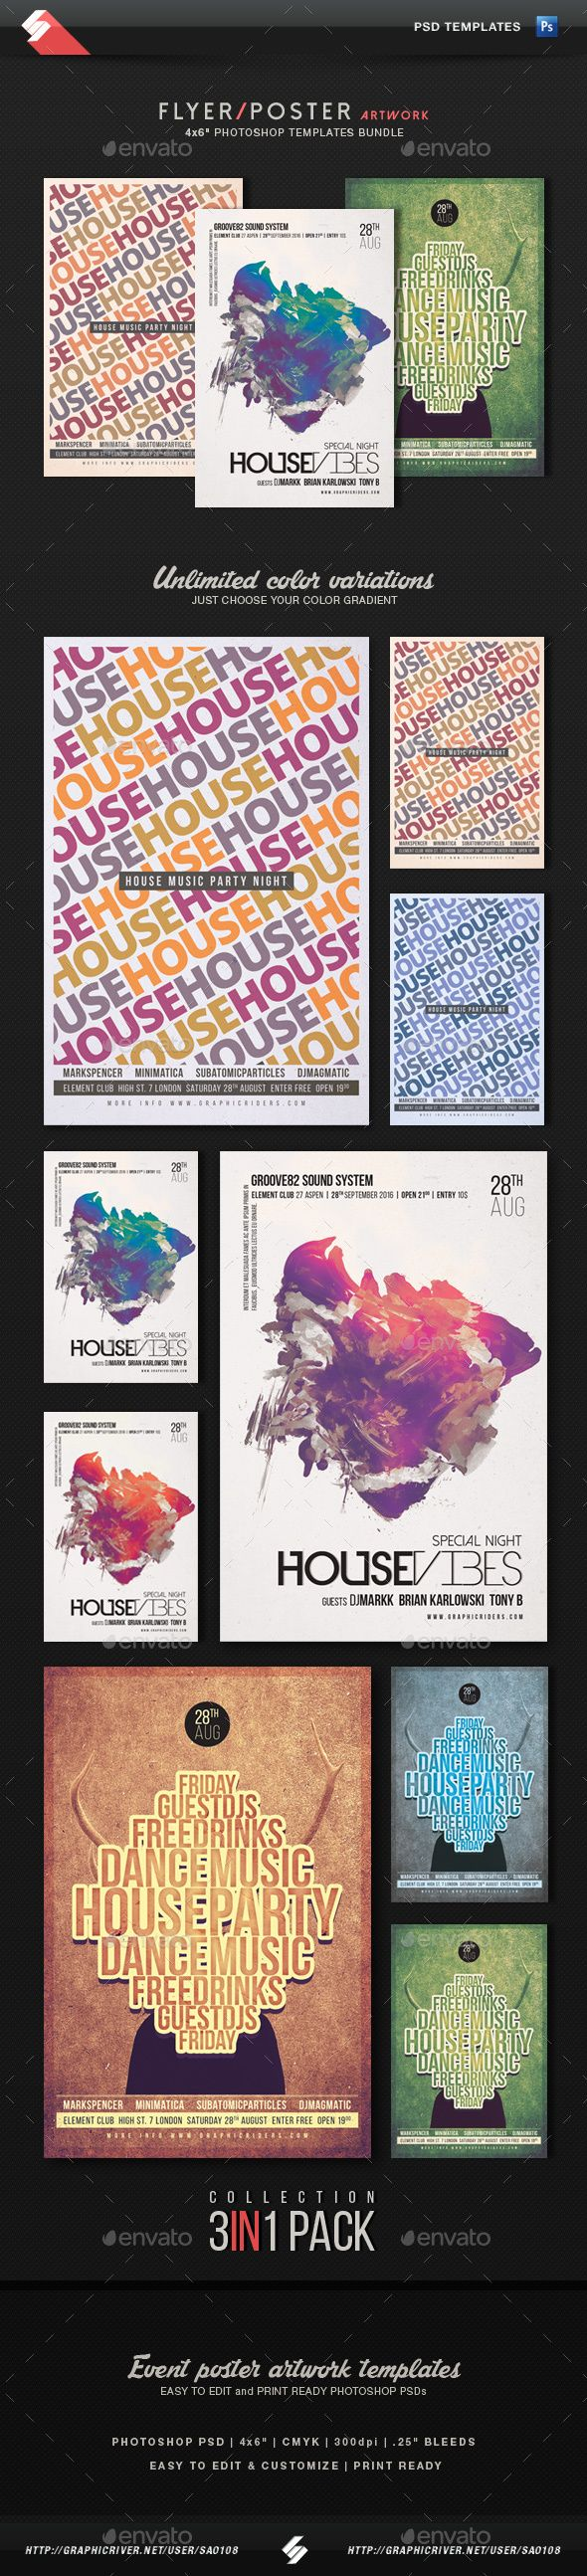 House Music - House Party Flyer Templates Bundle